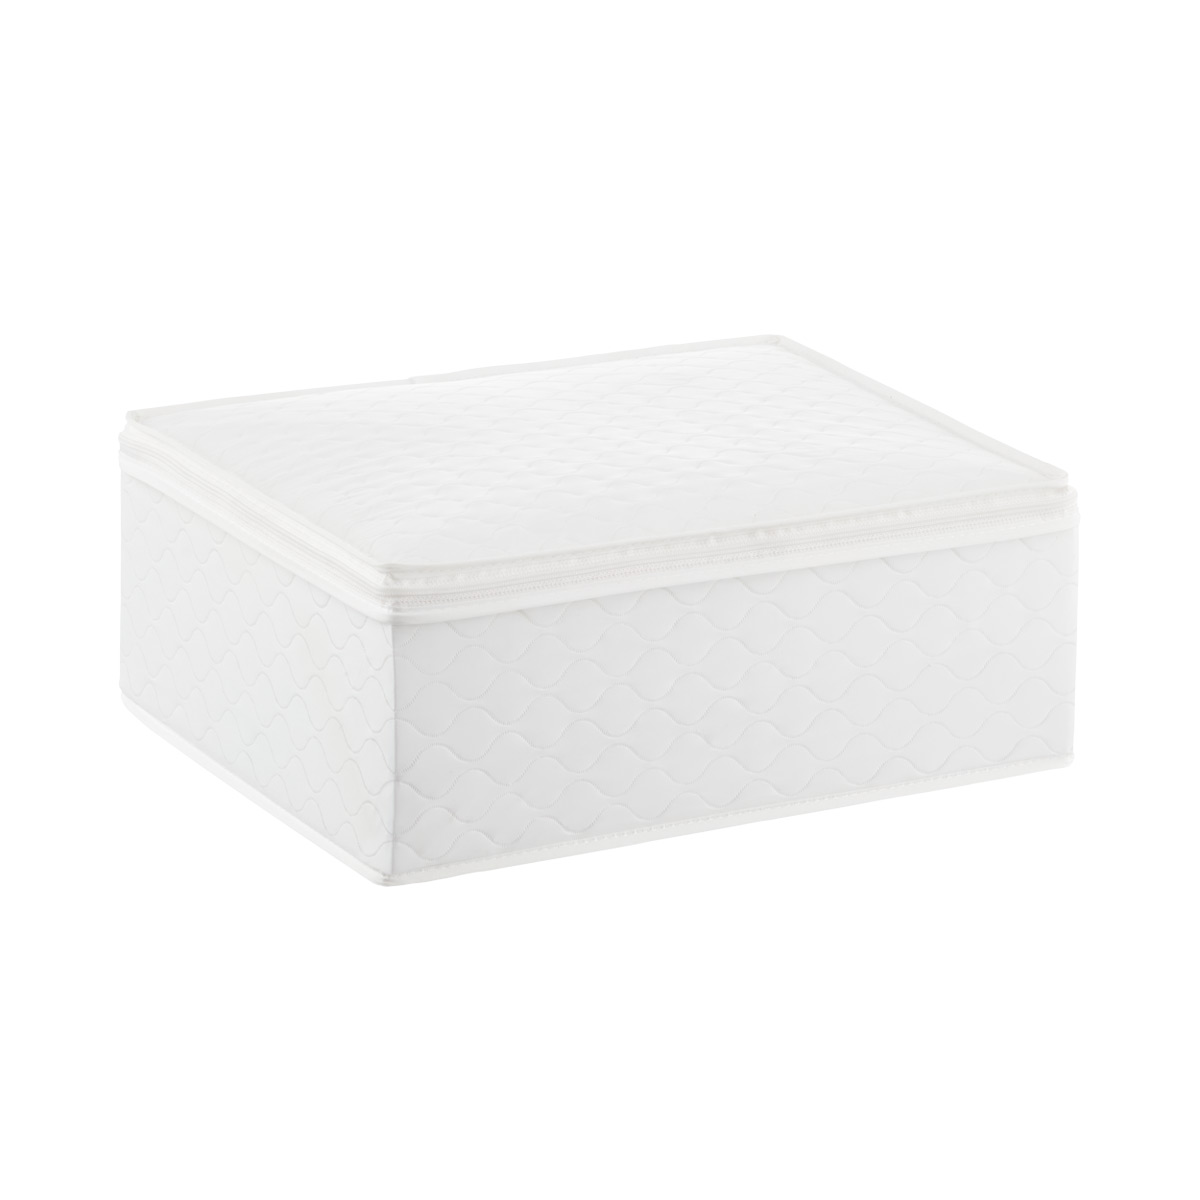 Beau White Quilted China Storage